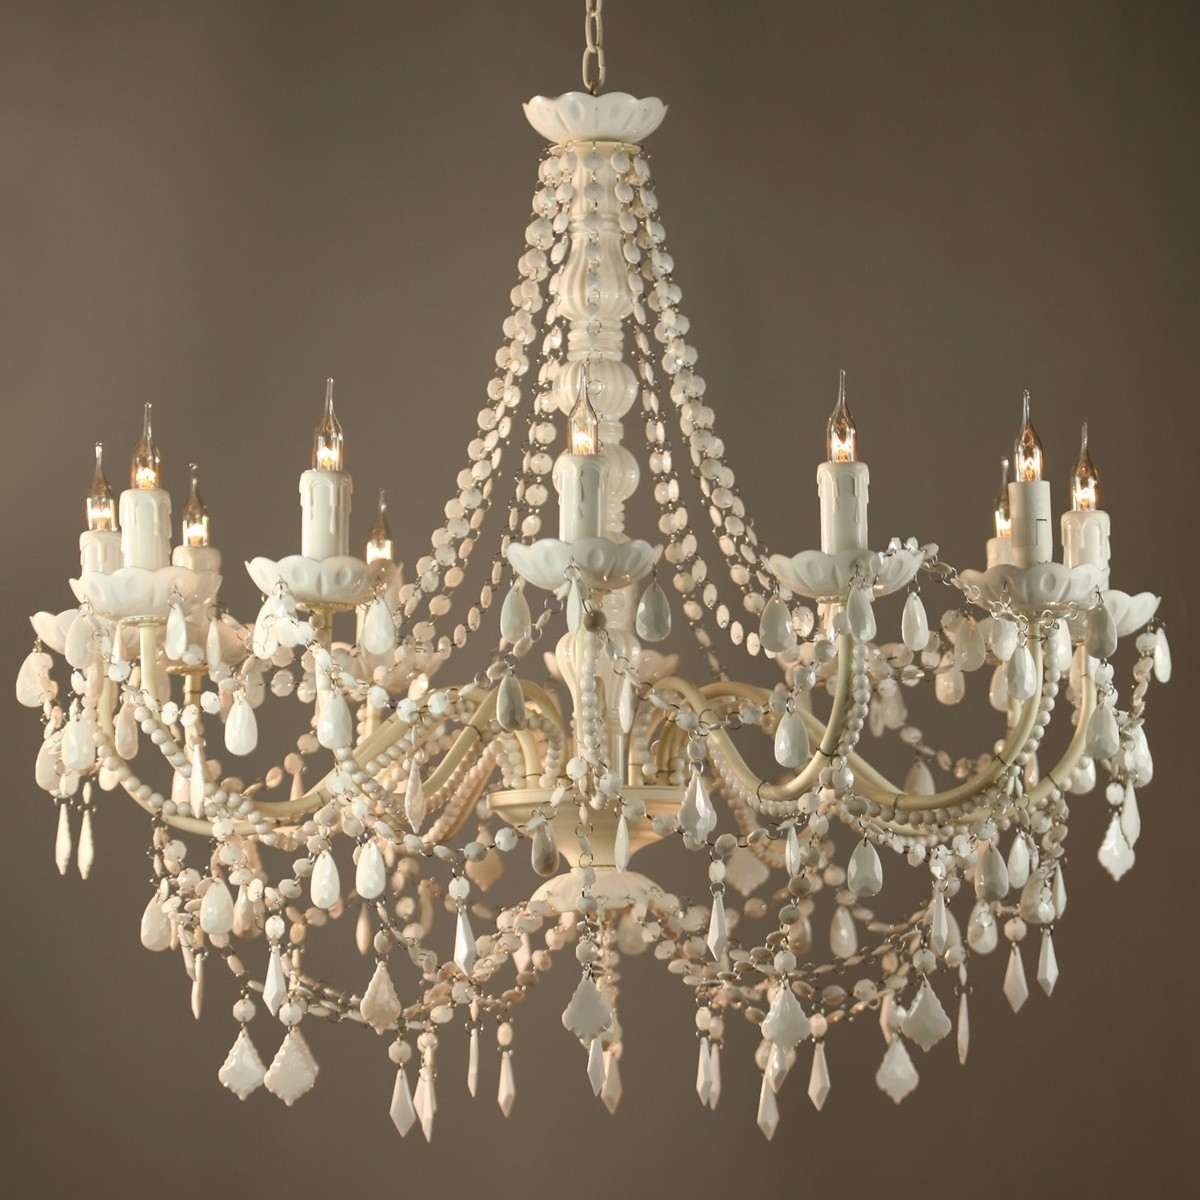 Vintage Style Chandeliers (Gallery 20 of 20)